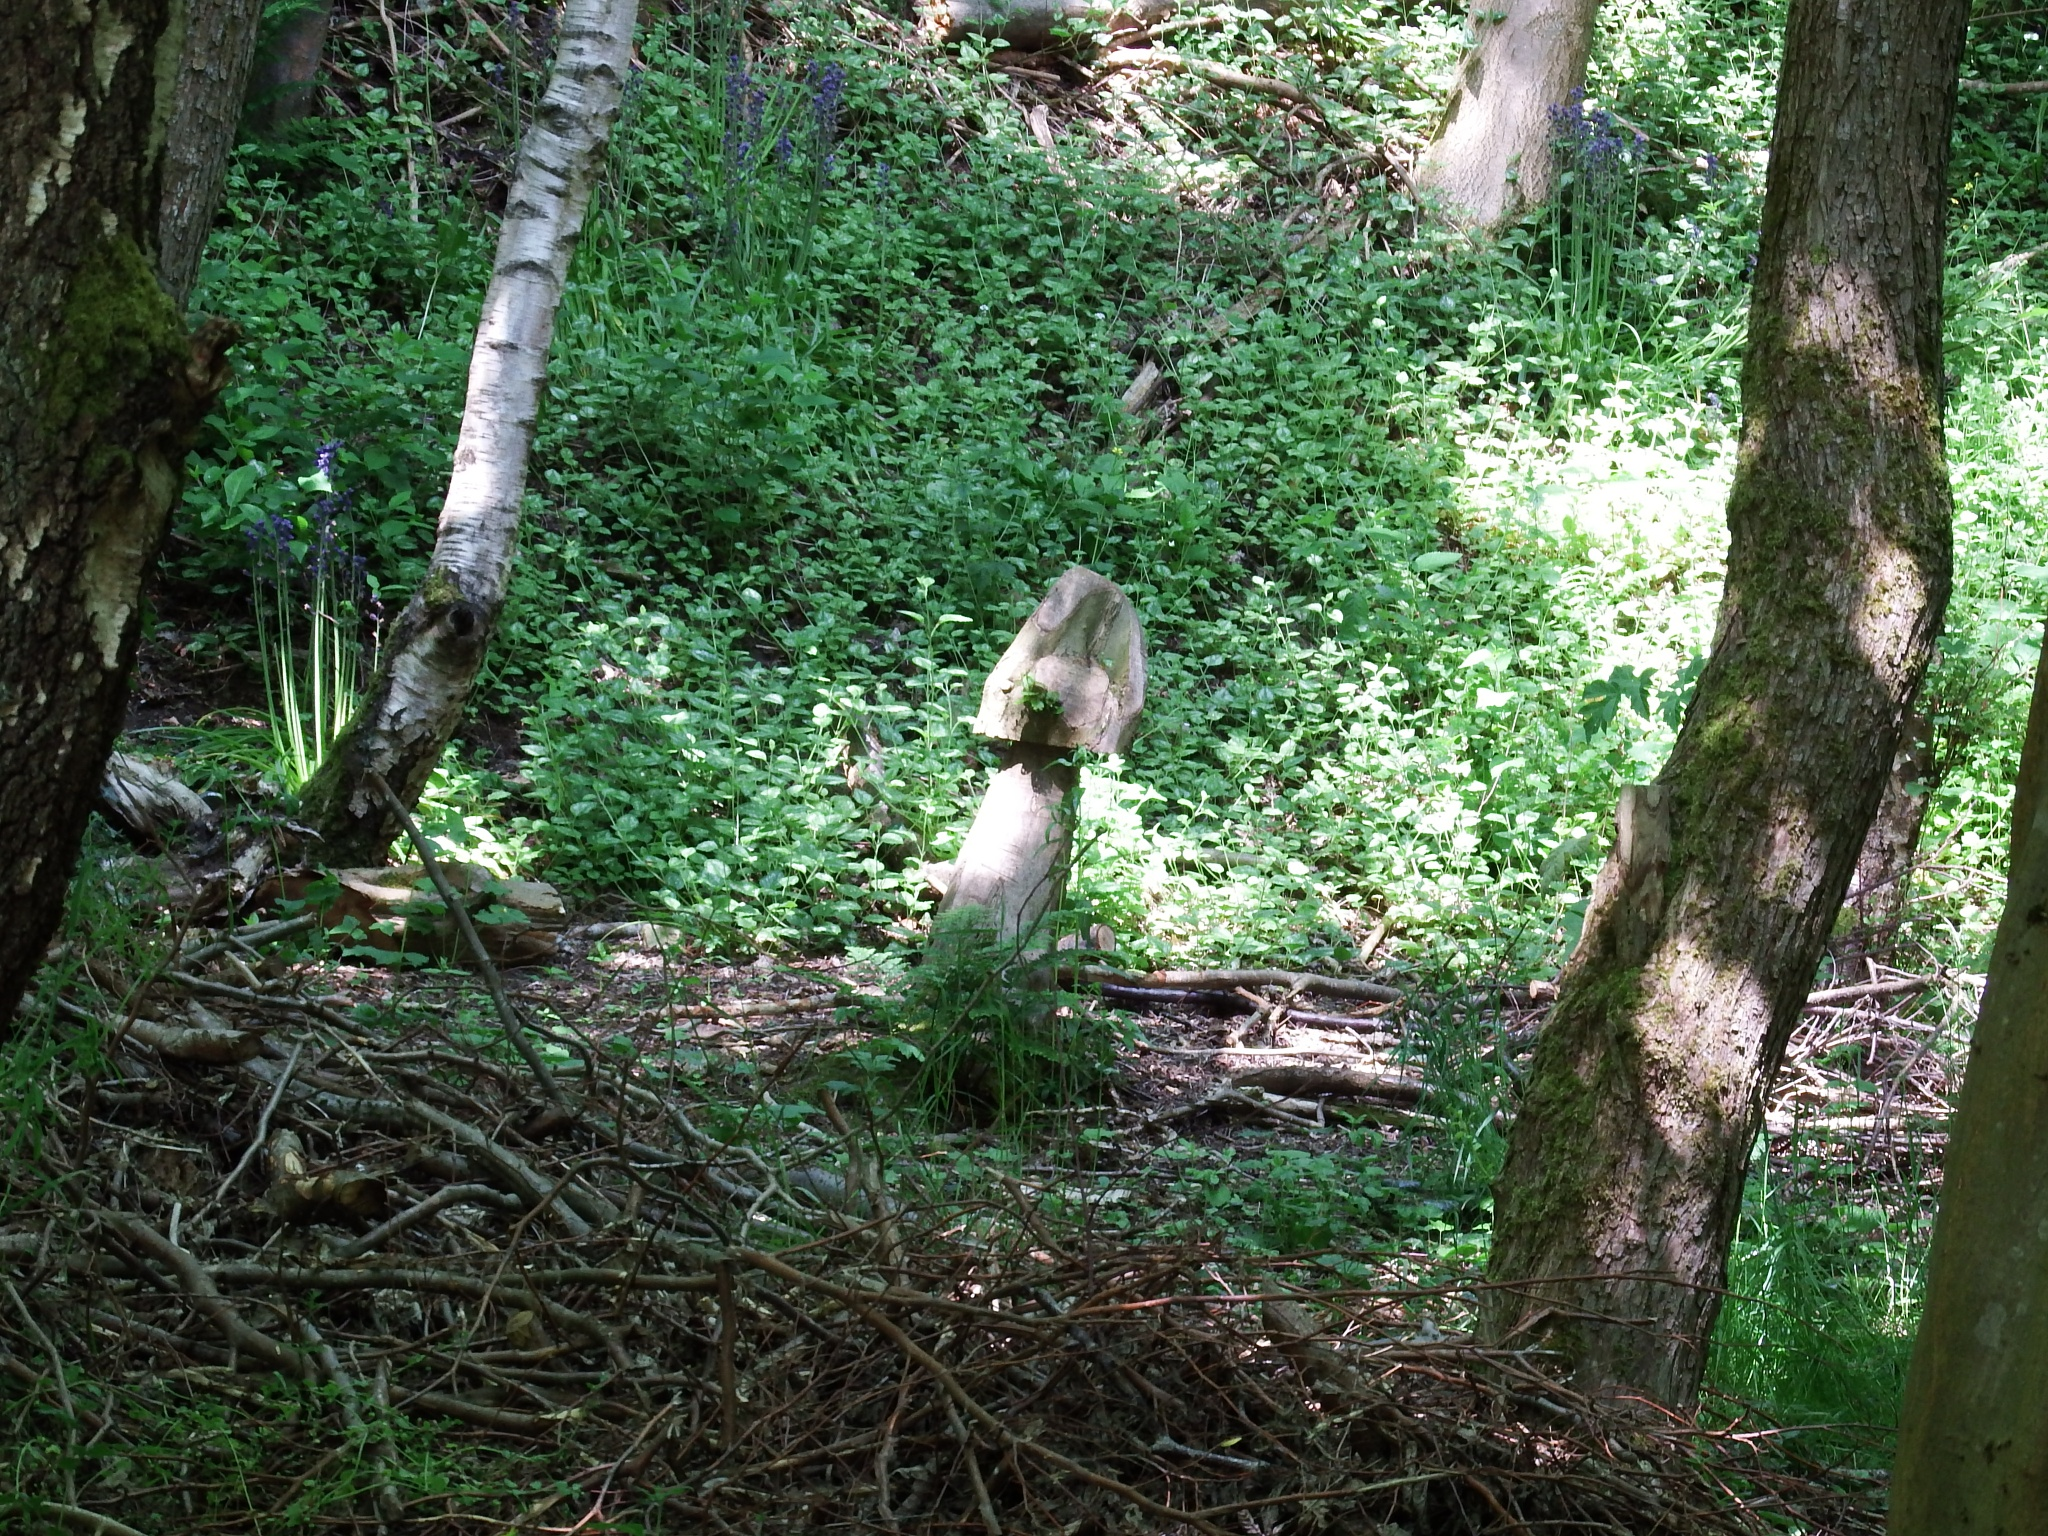 tree felling with a sense of humour  by seannel